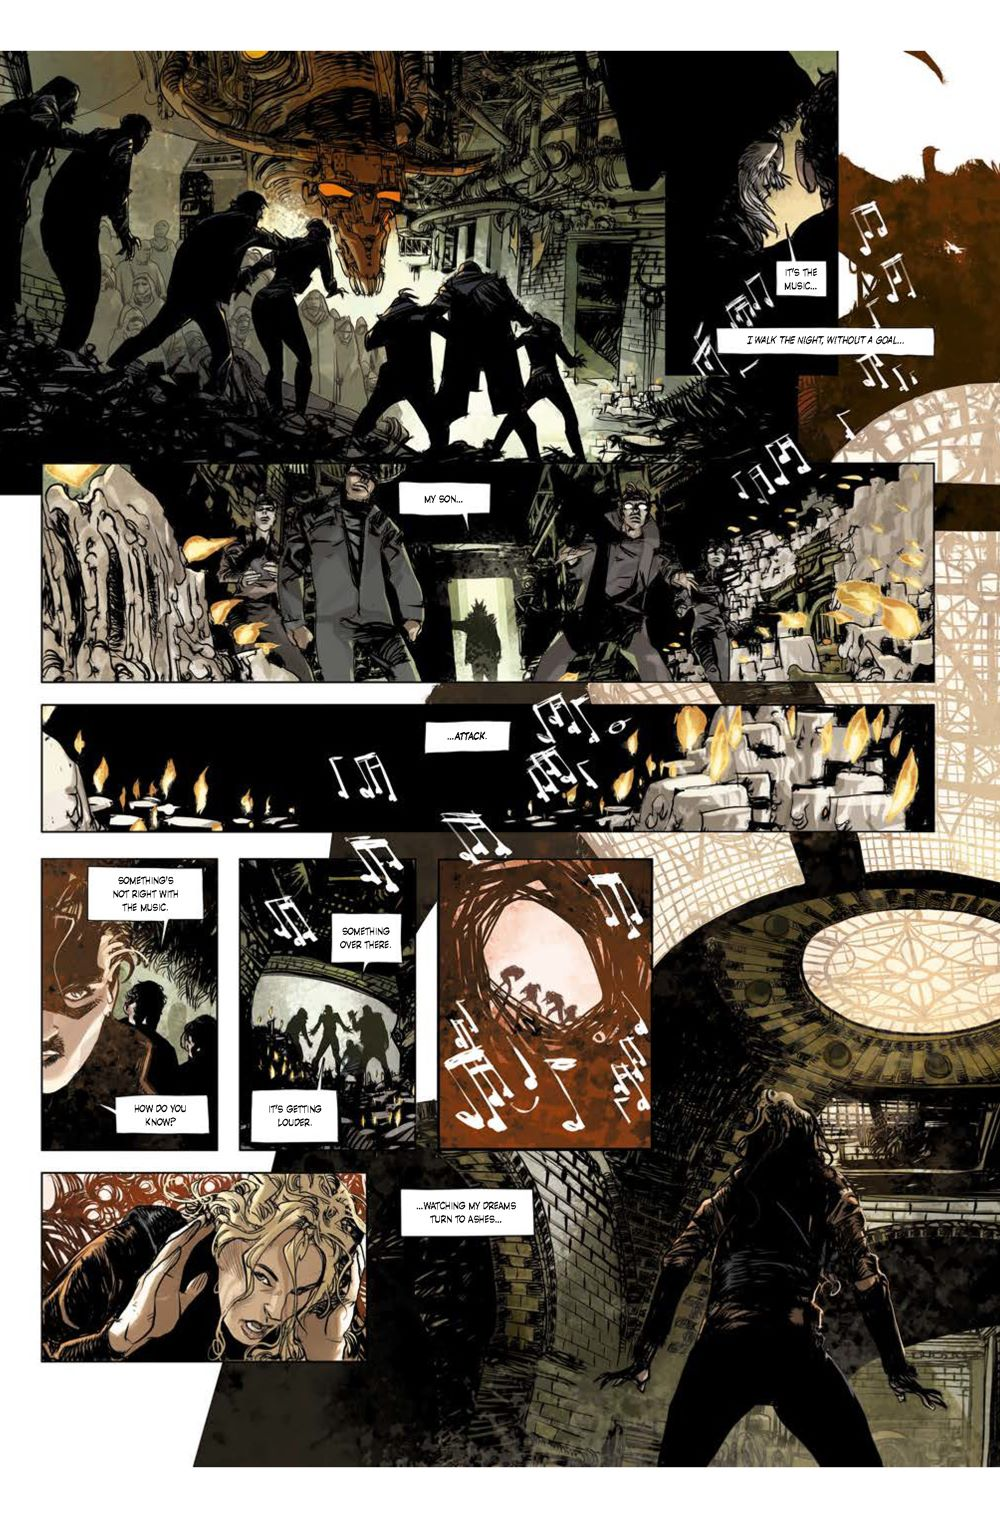 Cutting-Edge-The-Devils-Mirror-2-Binder1_Page_5 ComicList Previews: CUTTING EDGE THE DEVIL'S MIRROR #2 (OF 2)